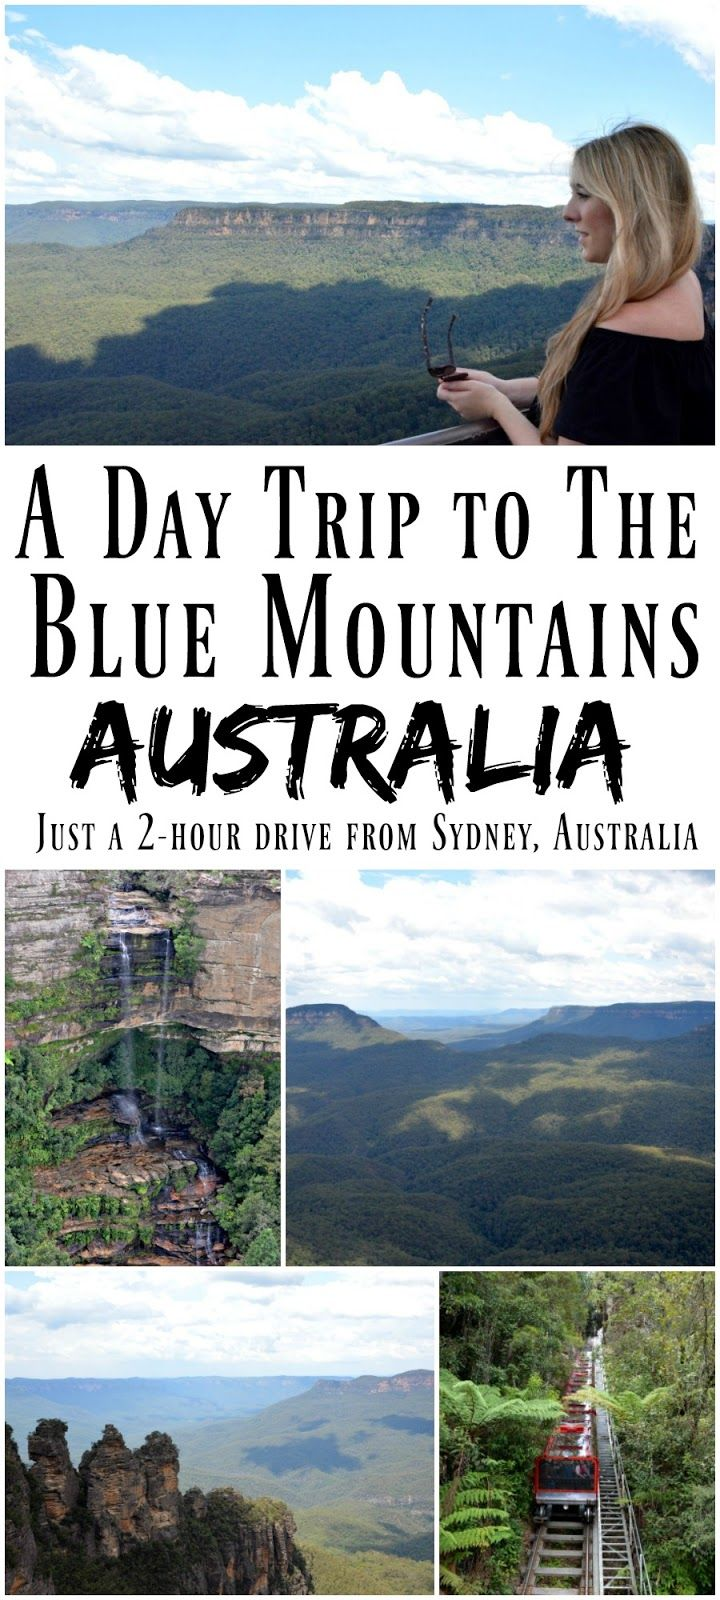 Find out how you can visit the Blue Mountains in Australia - they're just a two hour drive from Sydney in New South Wales. The Blue Mountains are breathtakingly beautiful and well worth visiting!